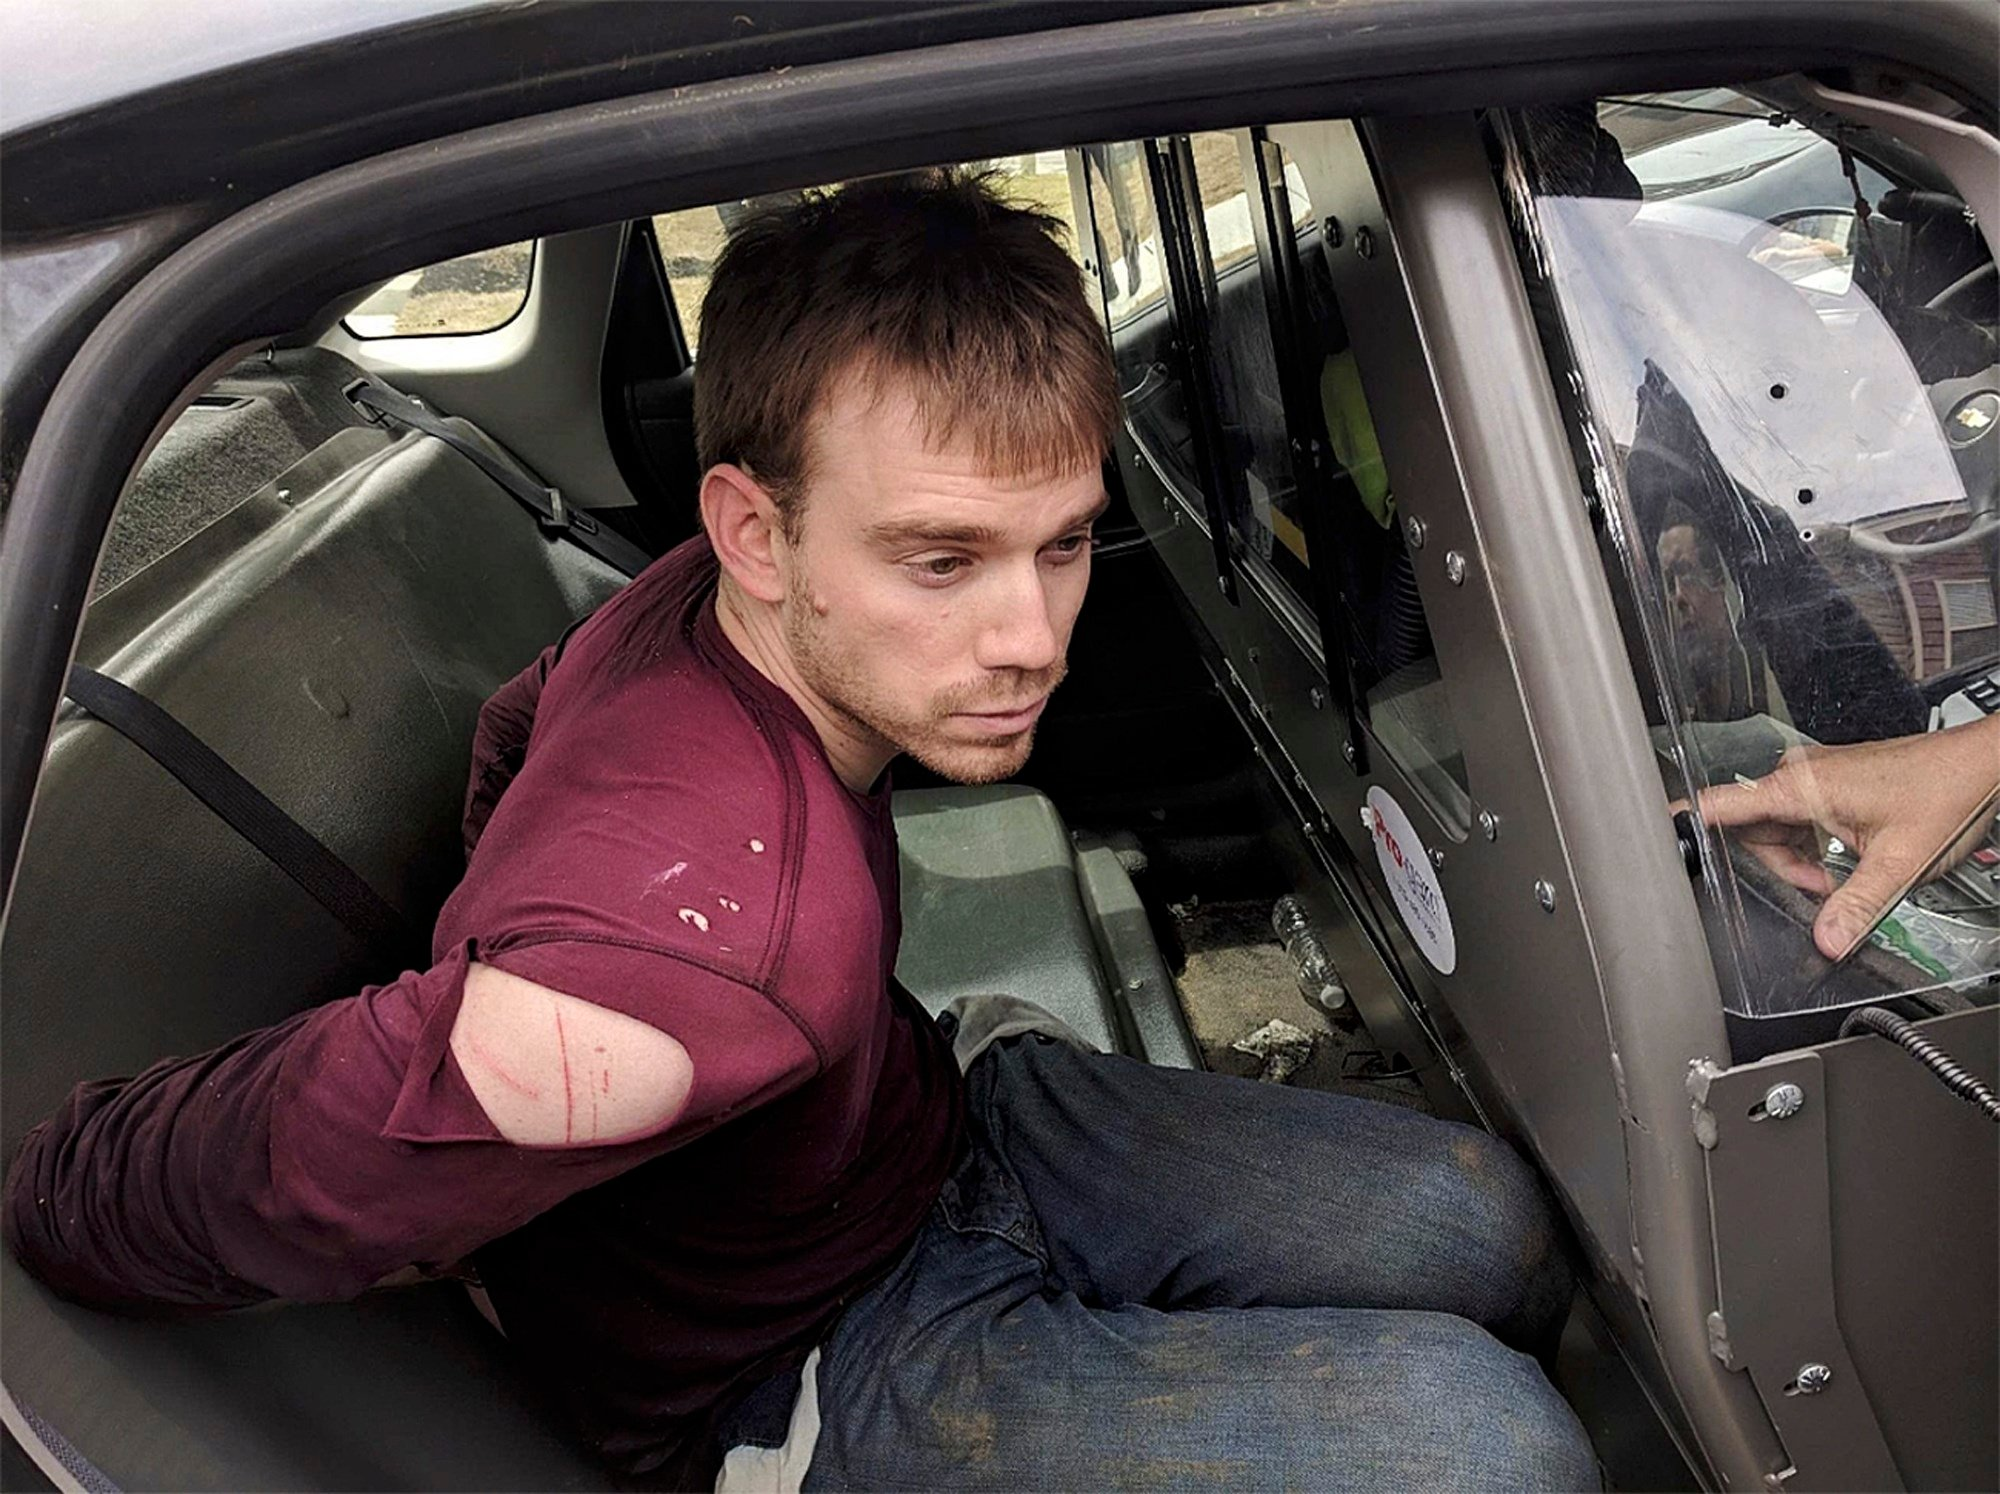 Travis Reinking sits in a police car after being arrested in Nashville, Tenn., on Monday, April 23, 2018. Police said Reinking opened fire at a Waffle House early Sunday, killing at least four people. (Metro Nashville Police Department via AP)